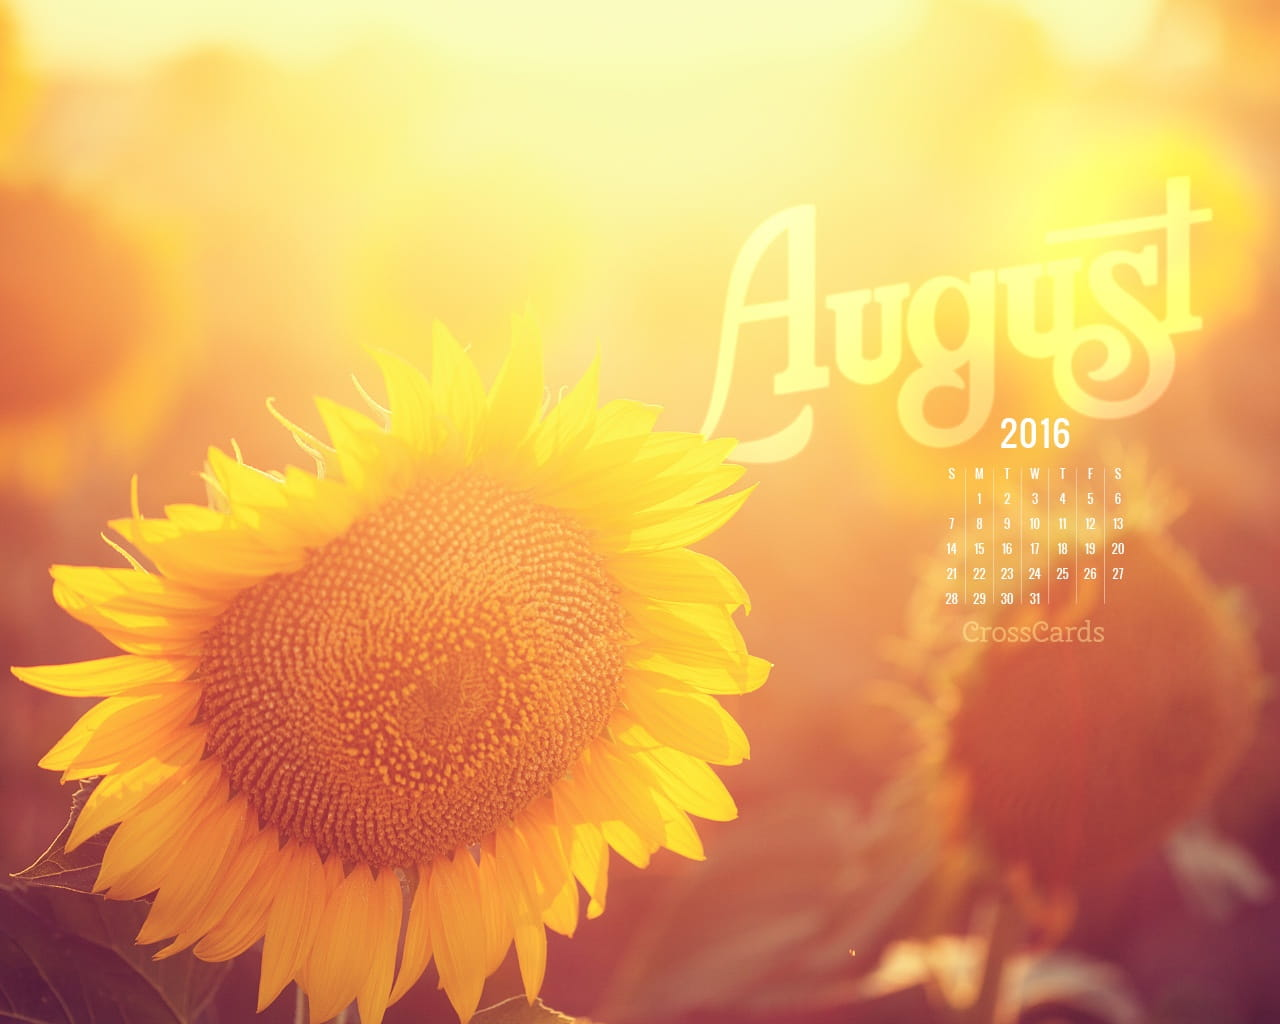 August Themed Backgrounds   1280x1024   Download HD Wallpaper 1280x1024